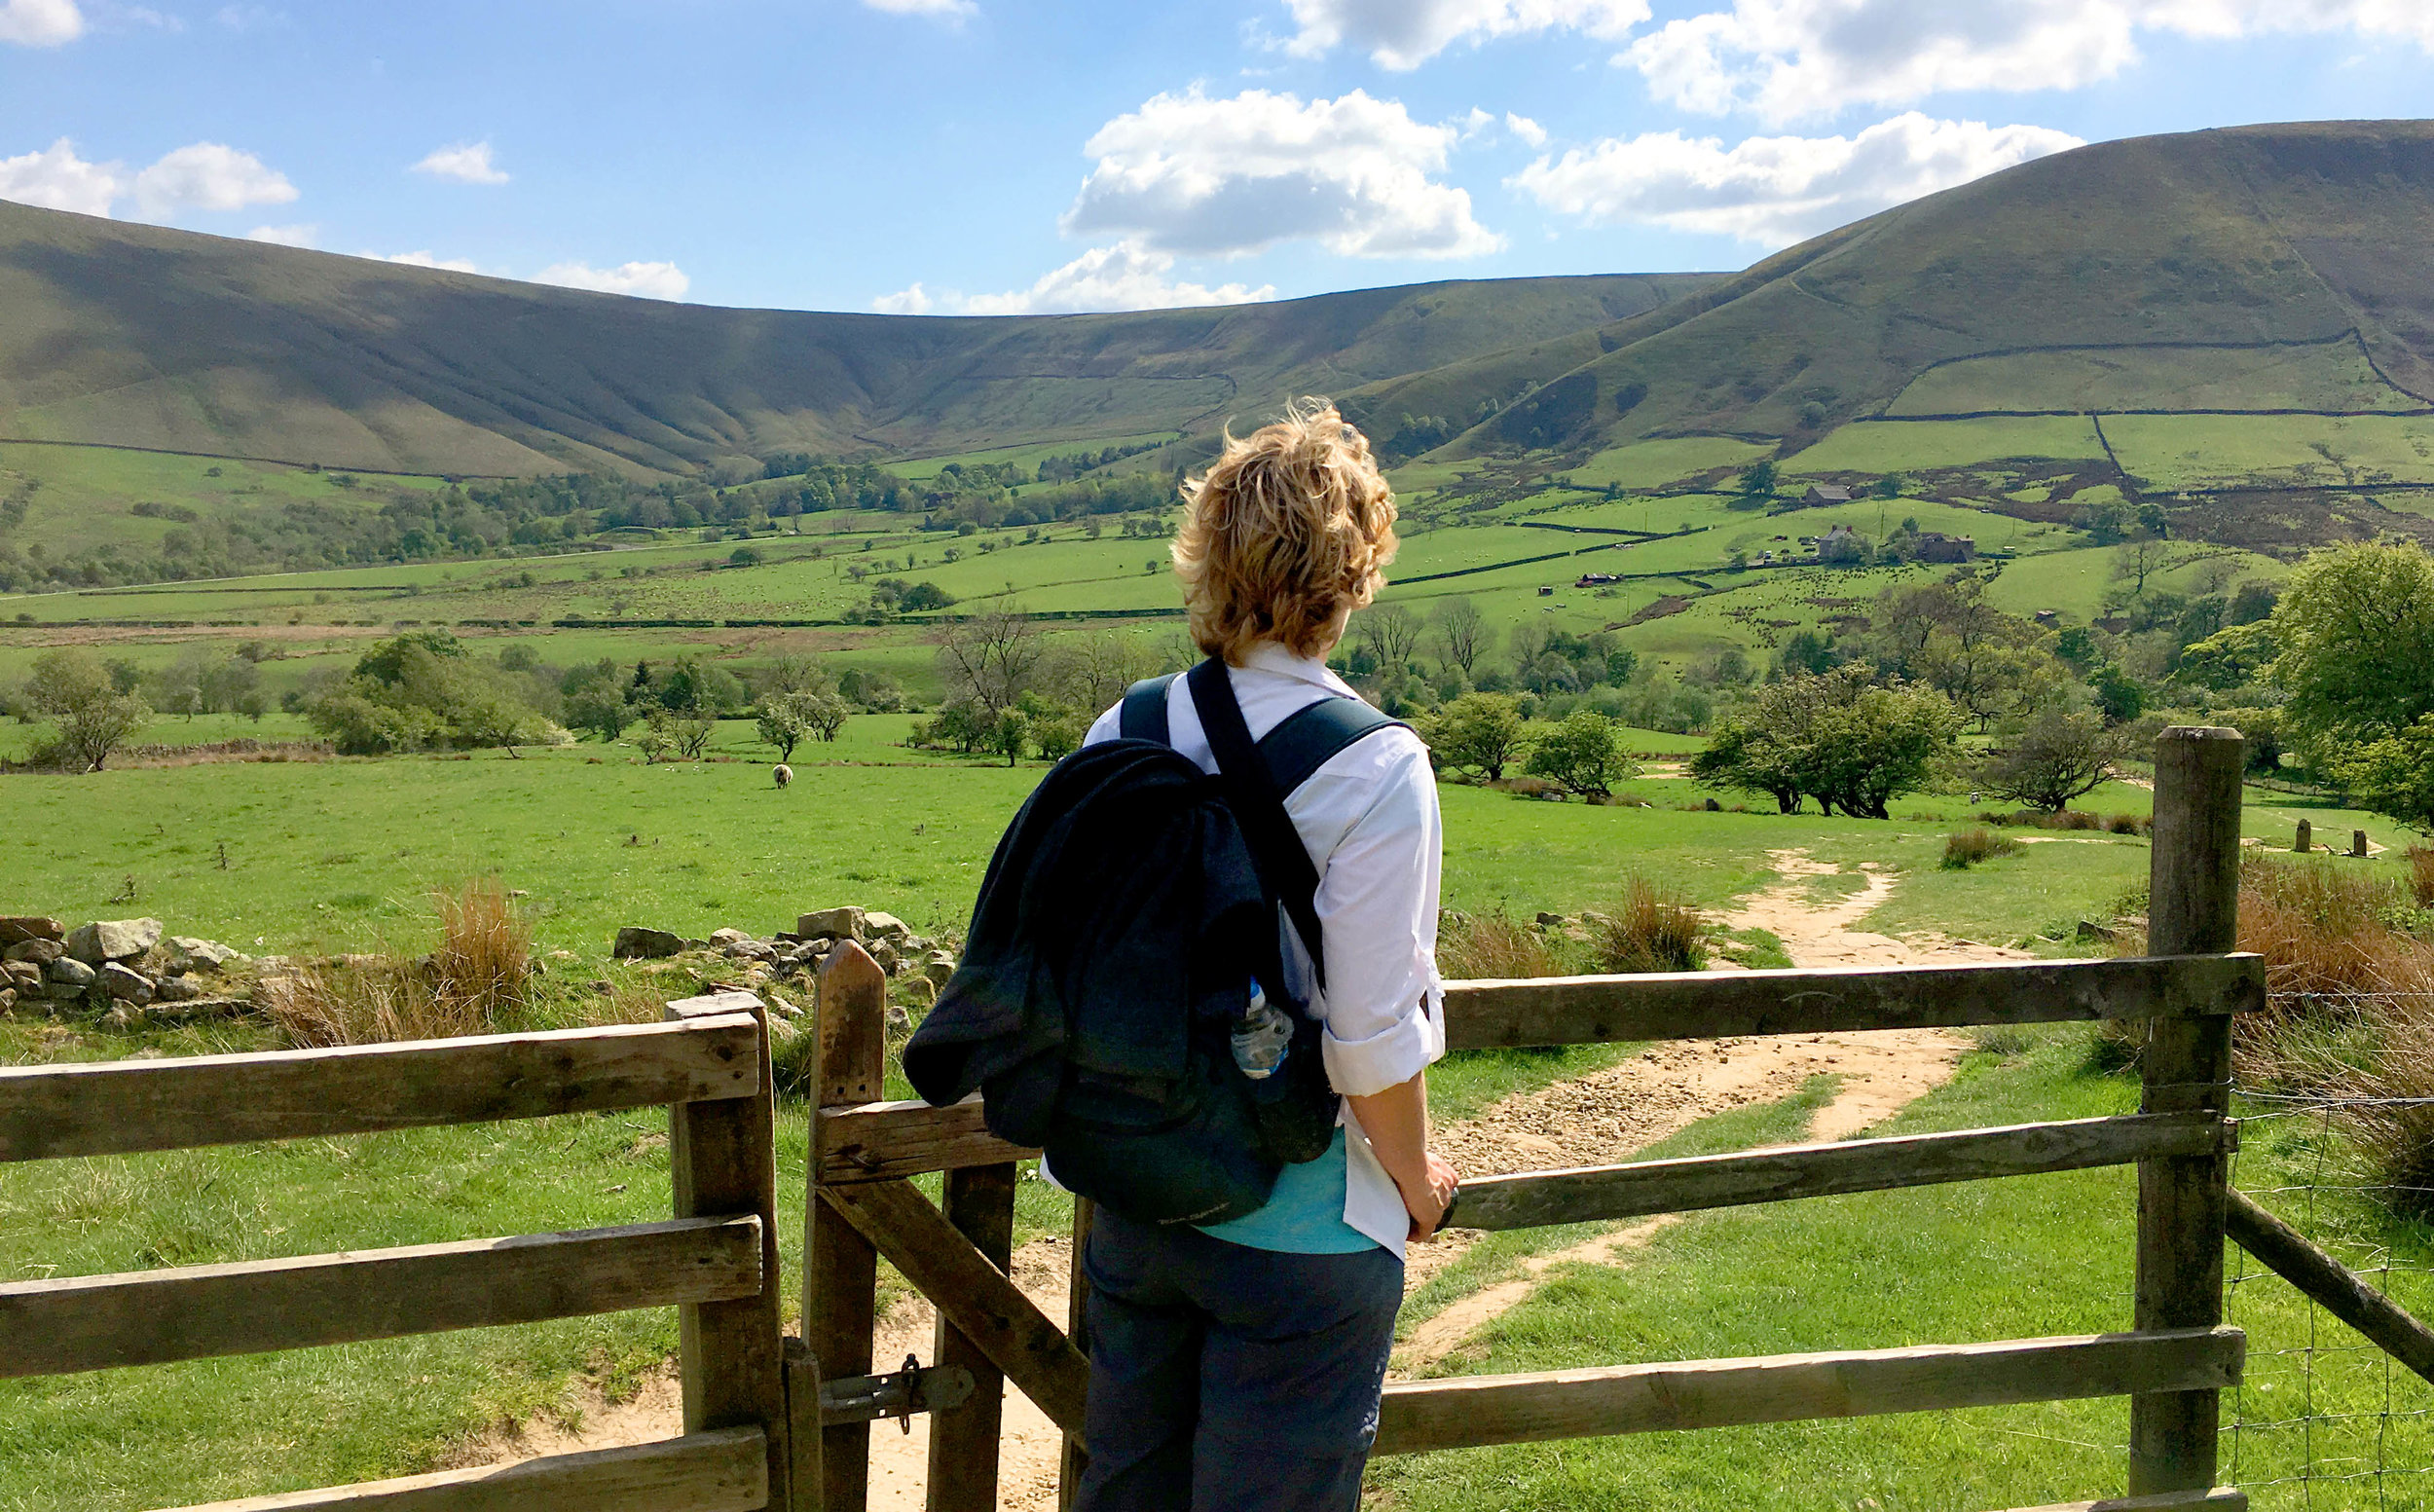 Gathering inspiration on a recent hike through the Yorkshire Dales National Park.